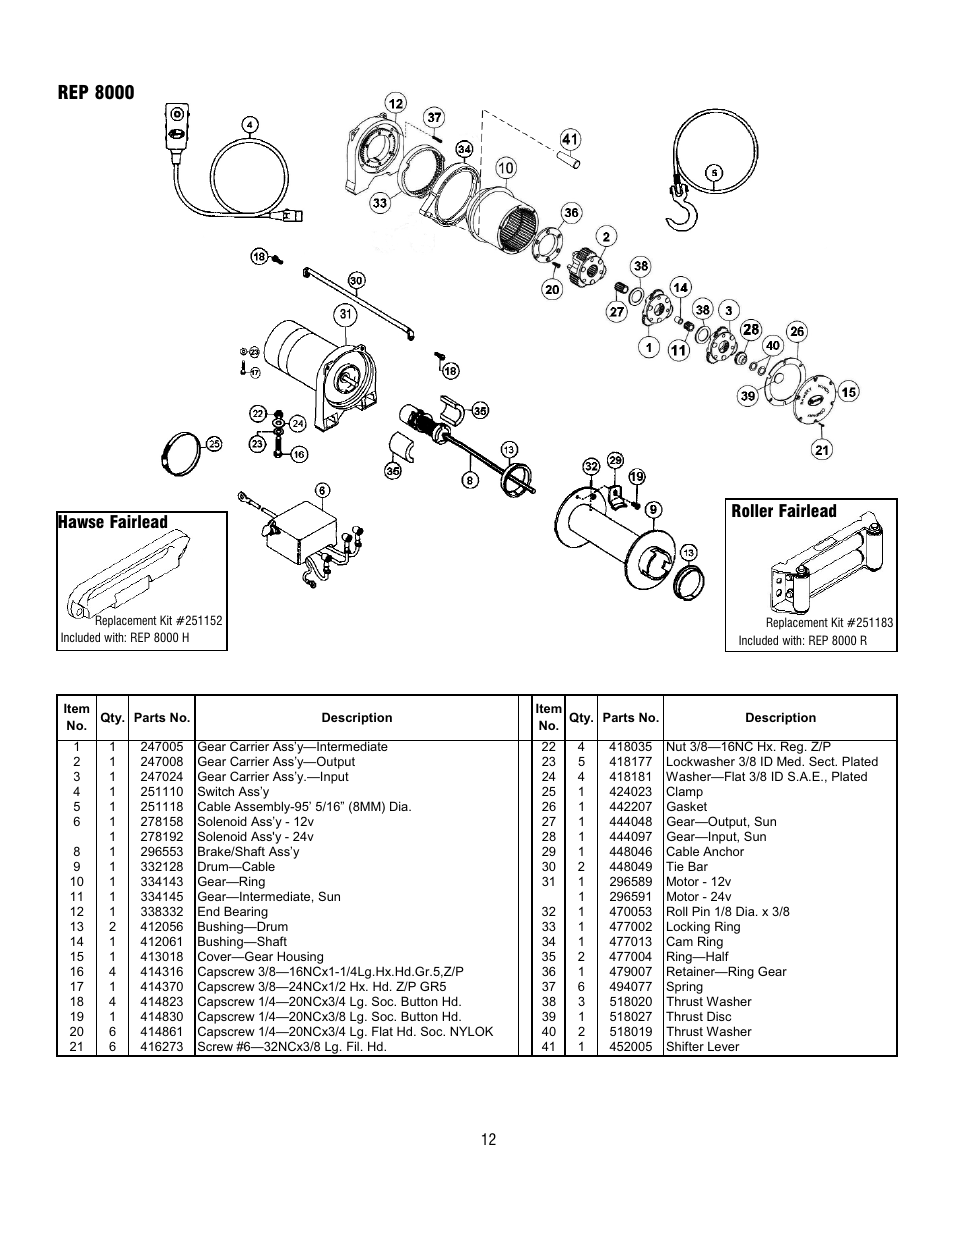 hight resolution of rep 8000 hawse fairlead roller fairlead ramsey winch rep 6000 8000 9000 current user manual page 12 16